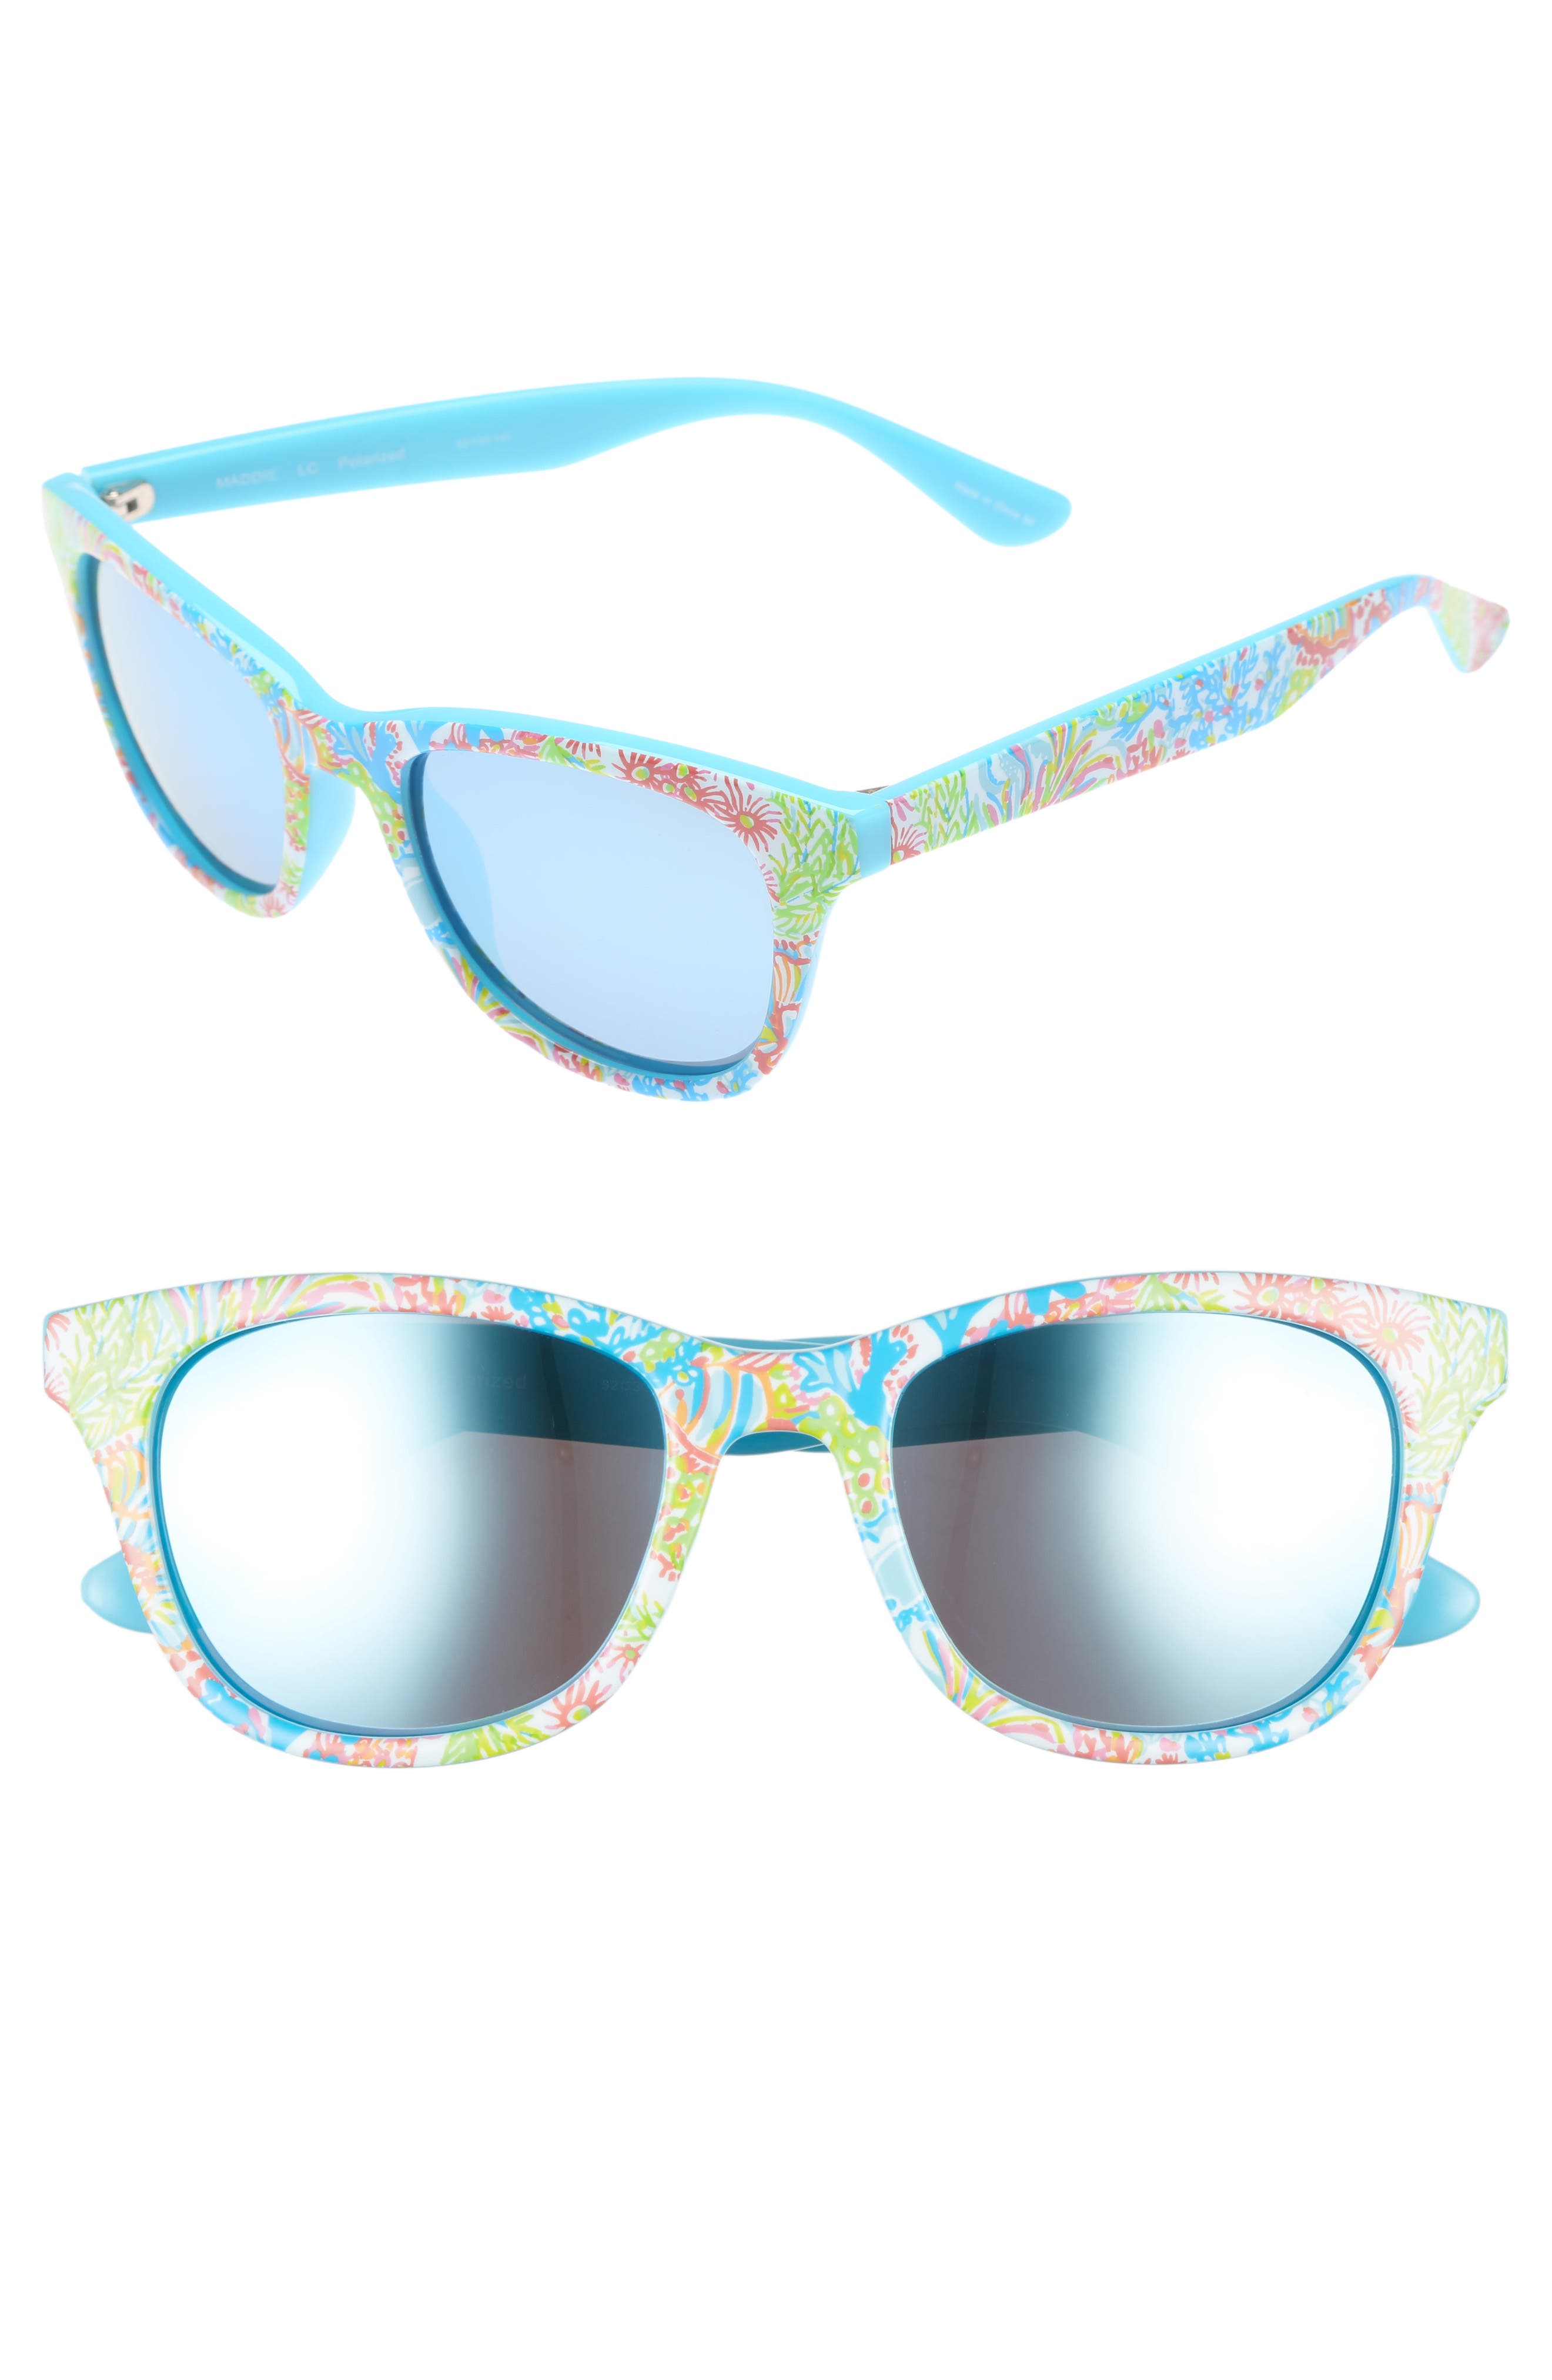 Maddie 52mm Polarized Mirrored Sunglasses,                         Main,                         color, Blue